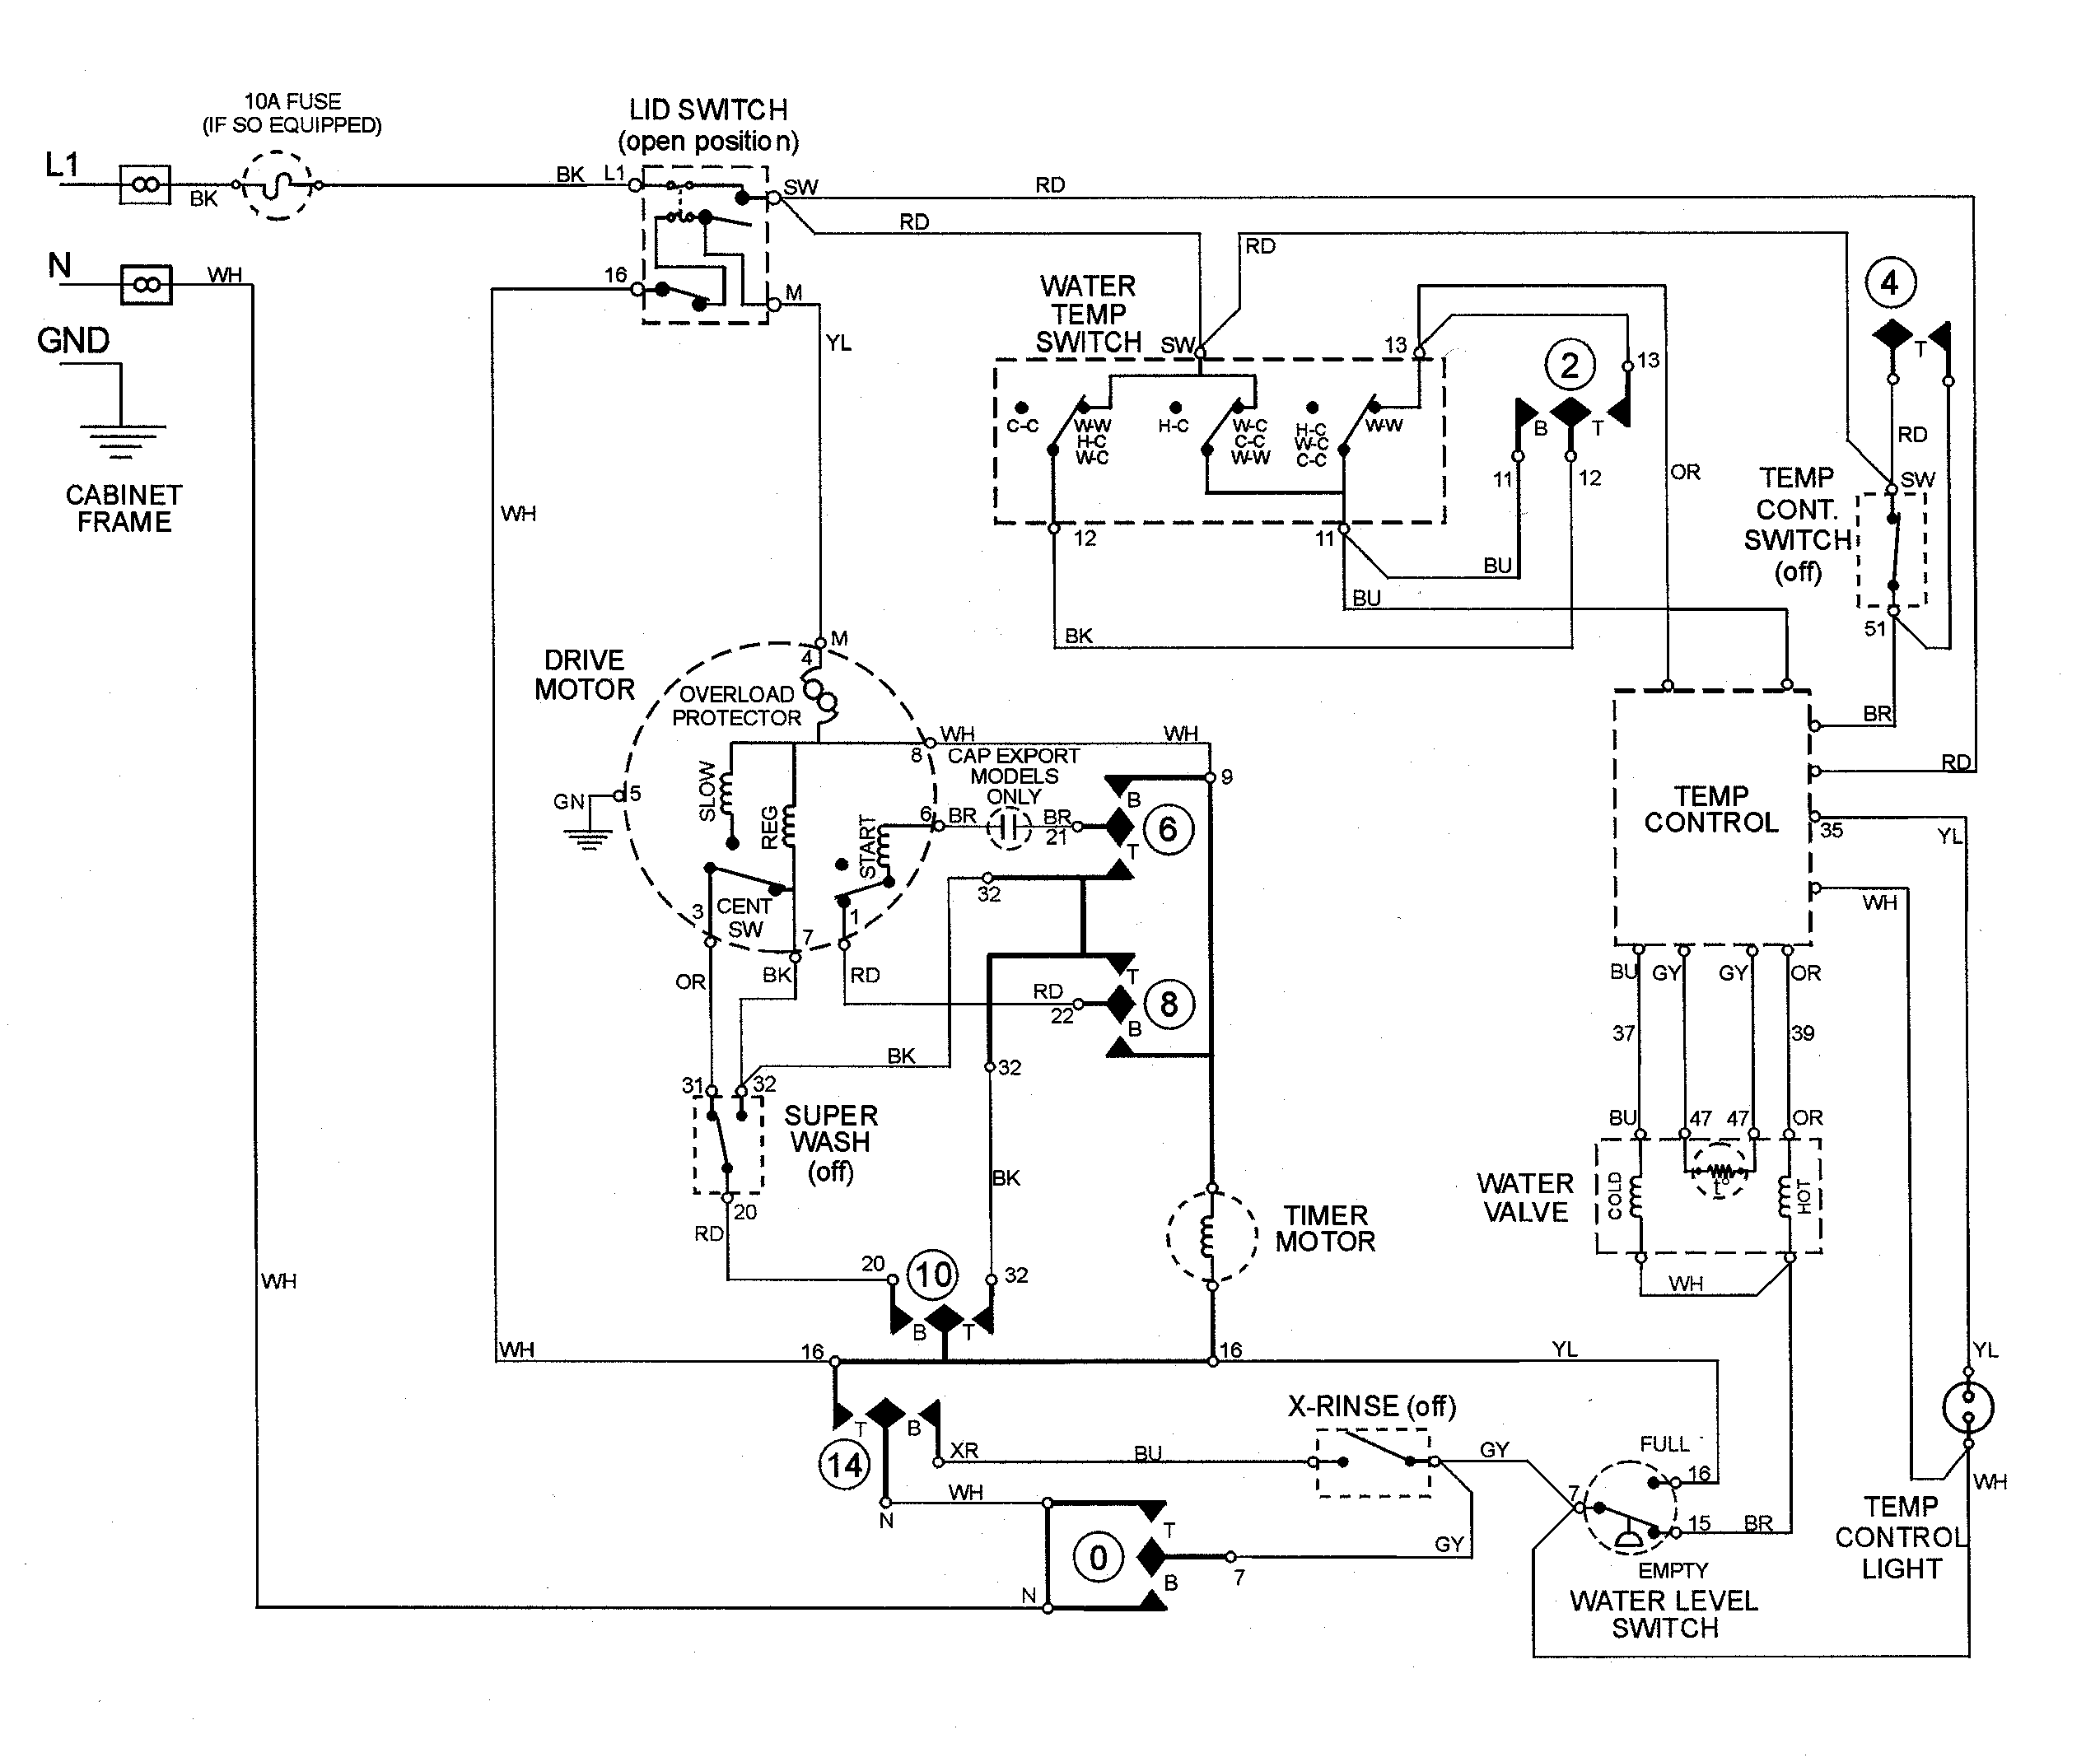 dbfe84c1294a289a6a6d42ba64109ee4 ge washing machine motor wiring diagram, ge, wiring diagram and ge washer wiring diagram at soozxer.org